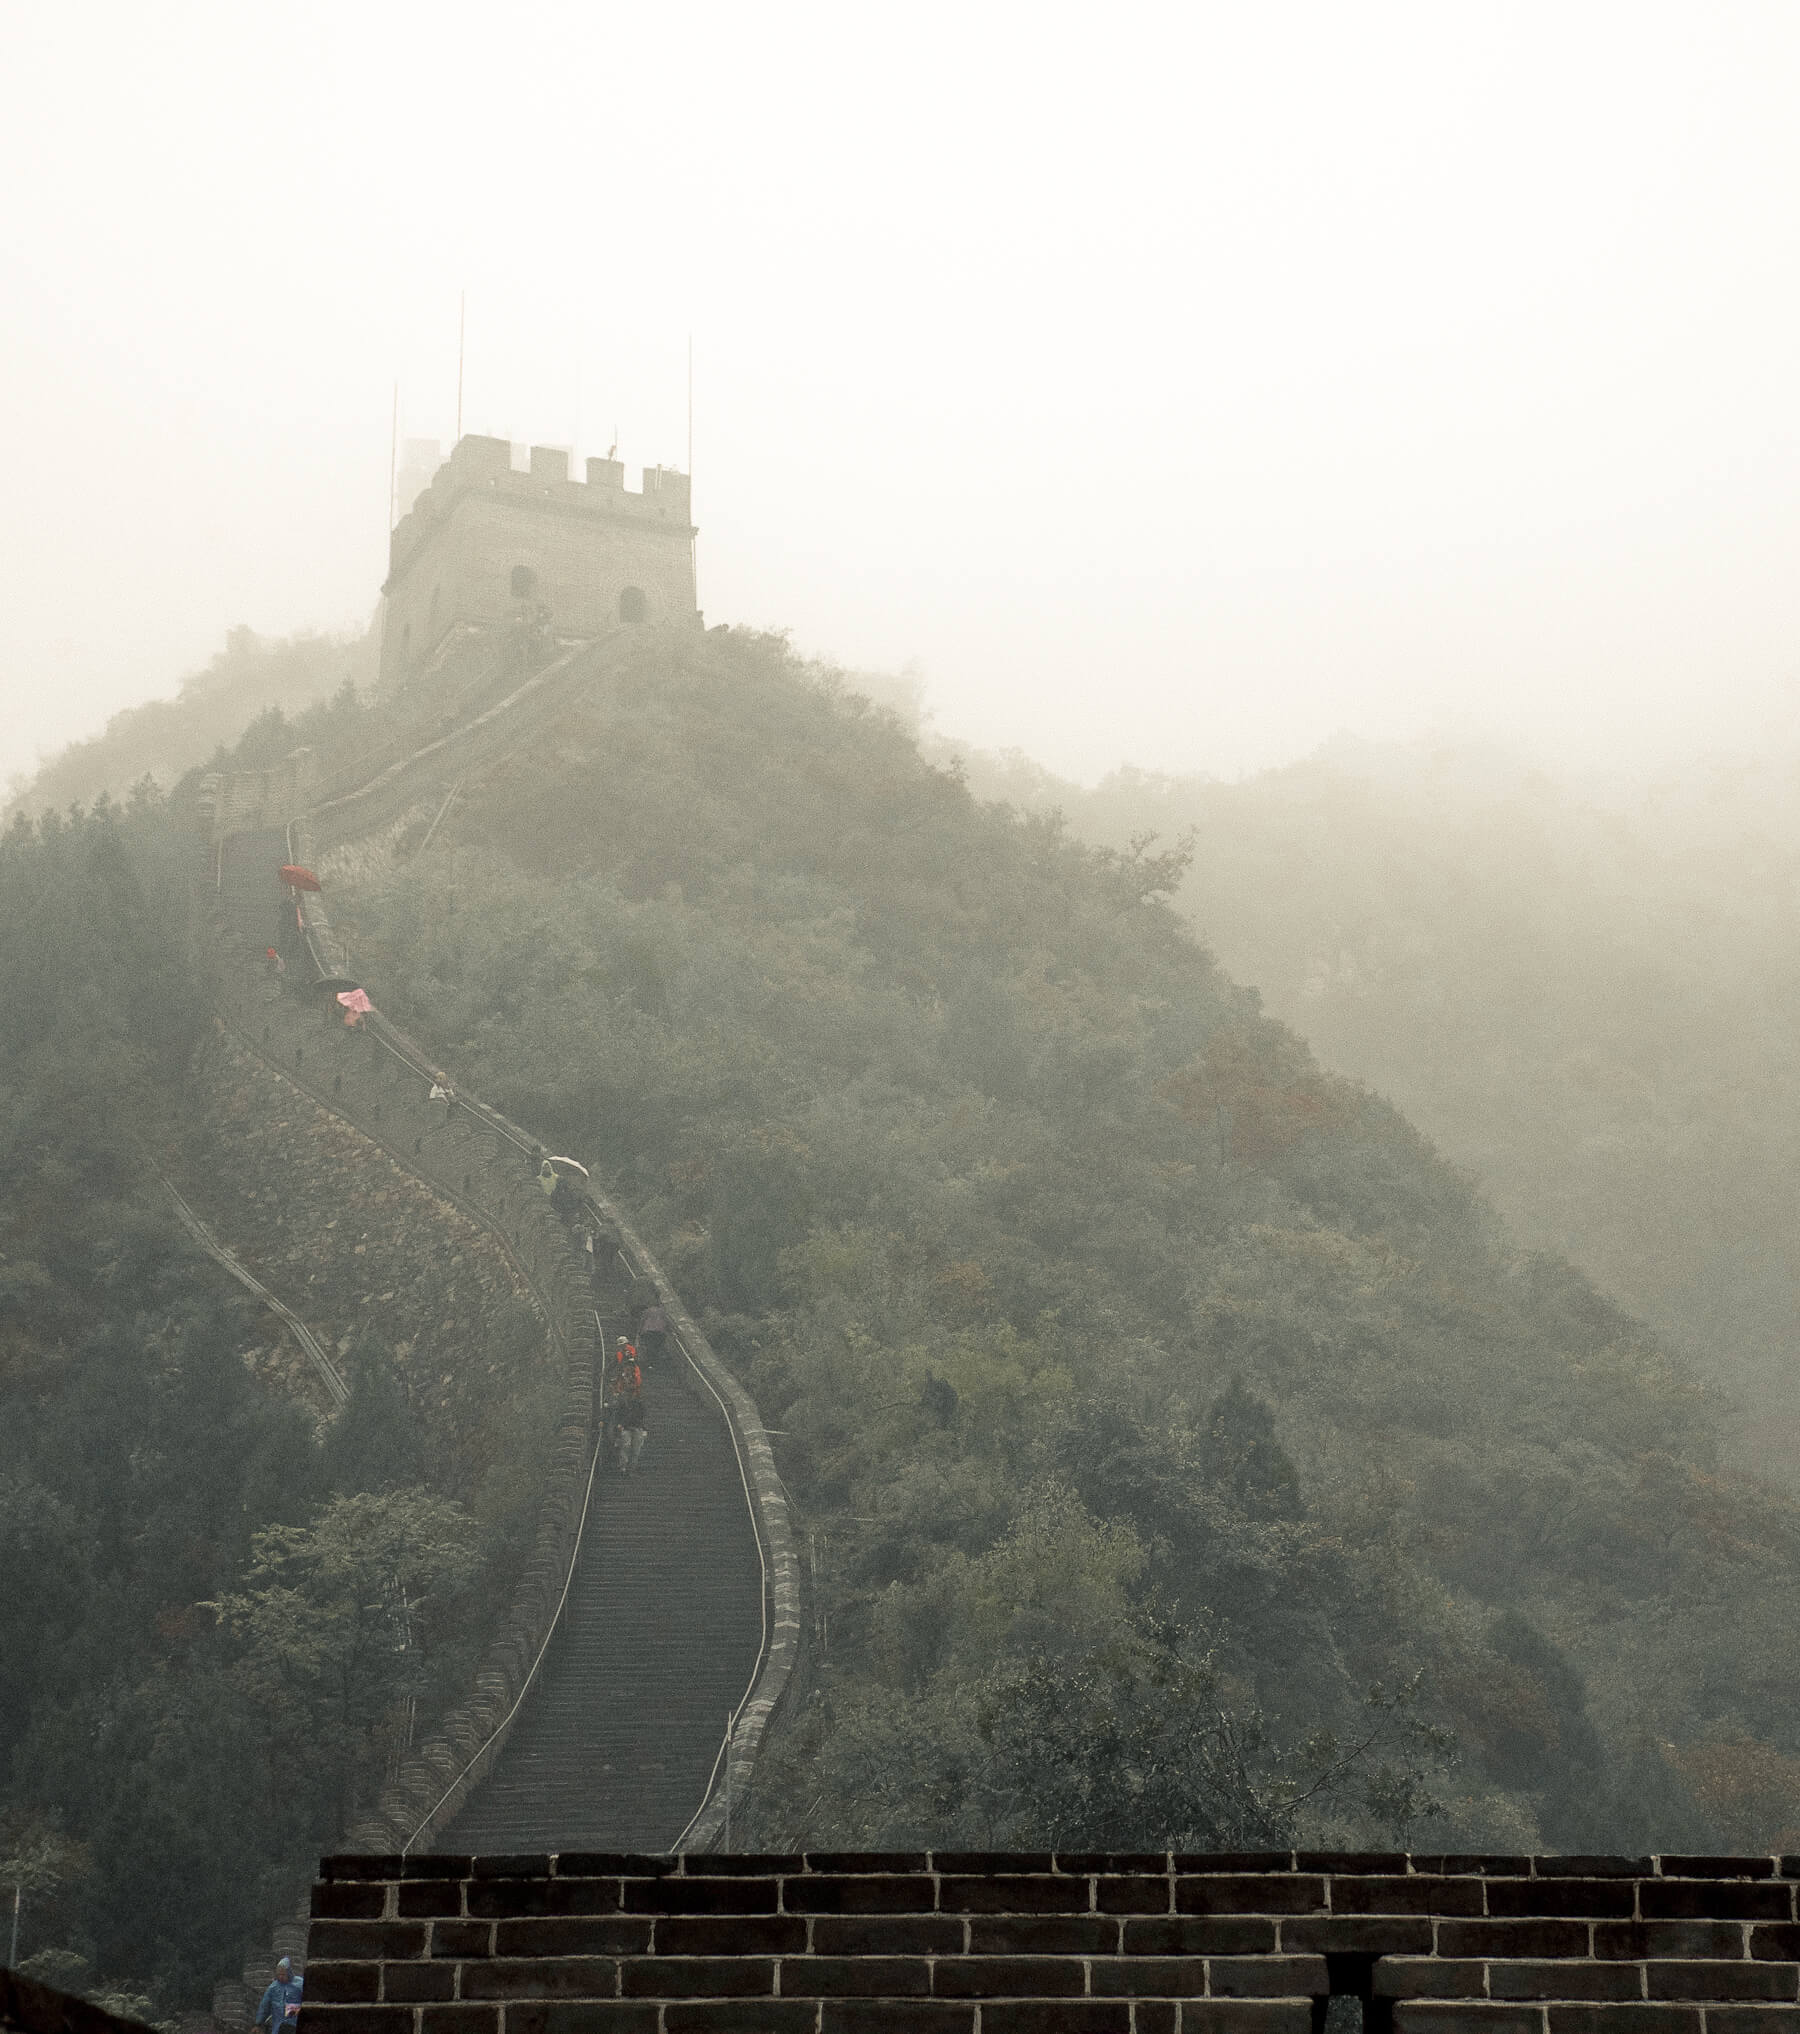 Watching people walking up the steepest portion of the Great Wall of China